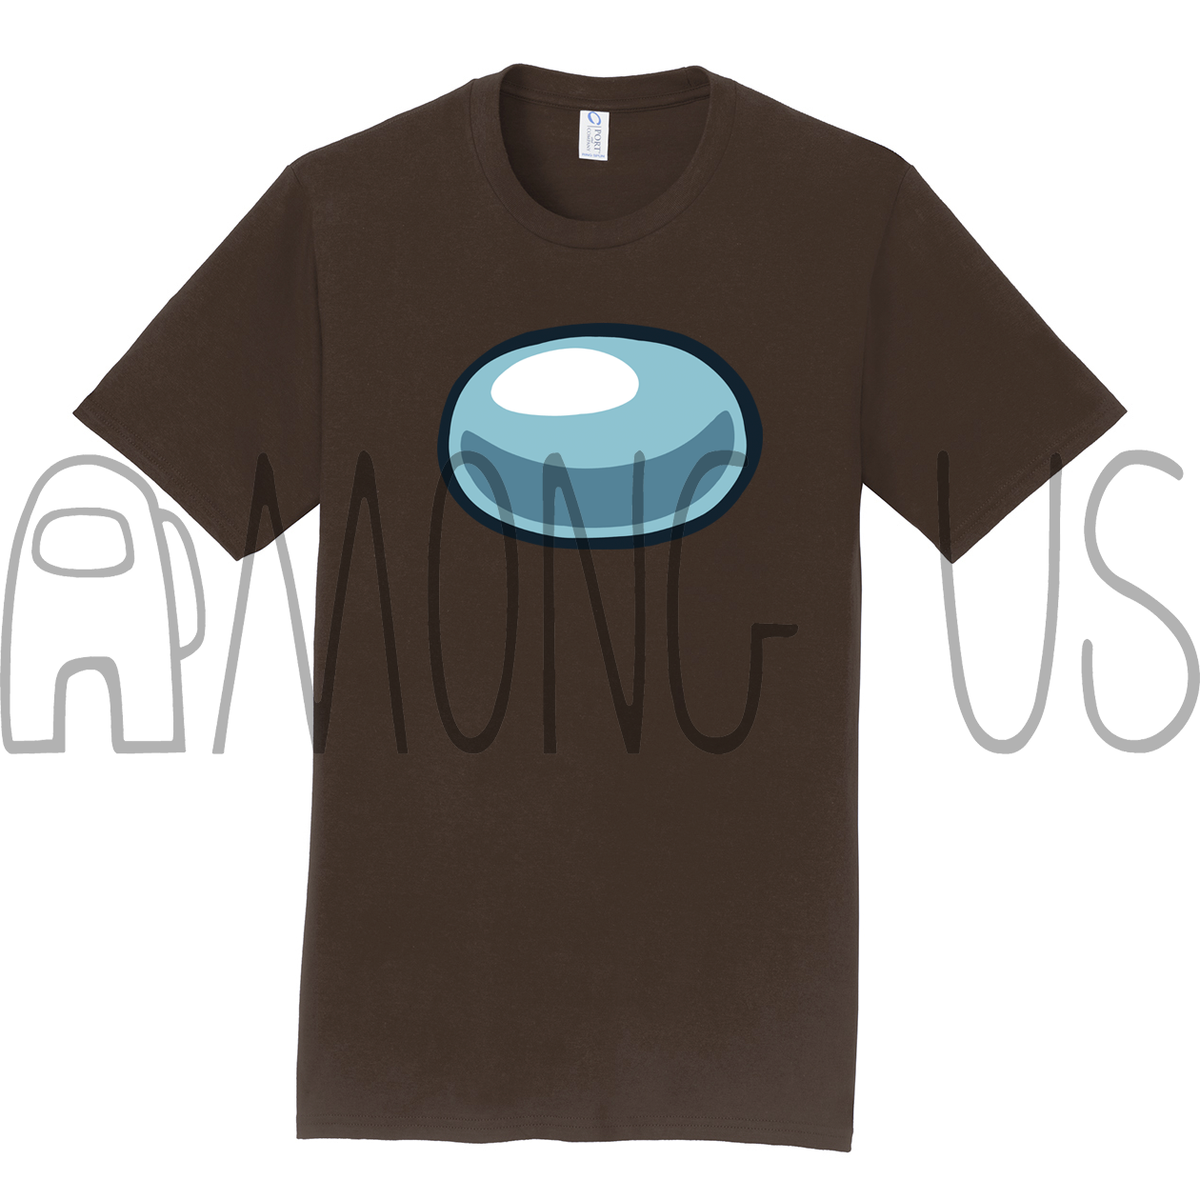 Among Us: Crewmate Tee (Warm Colors)